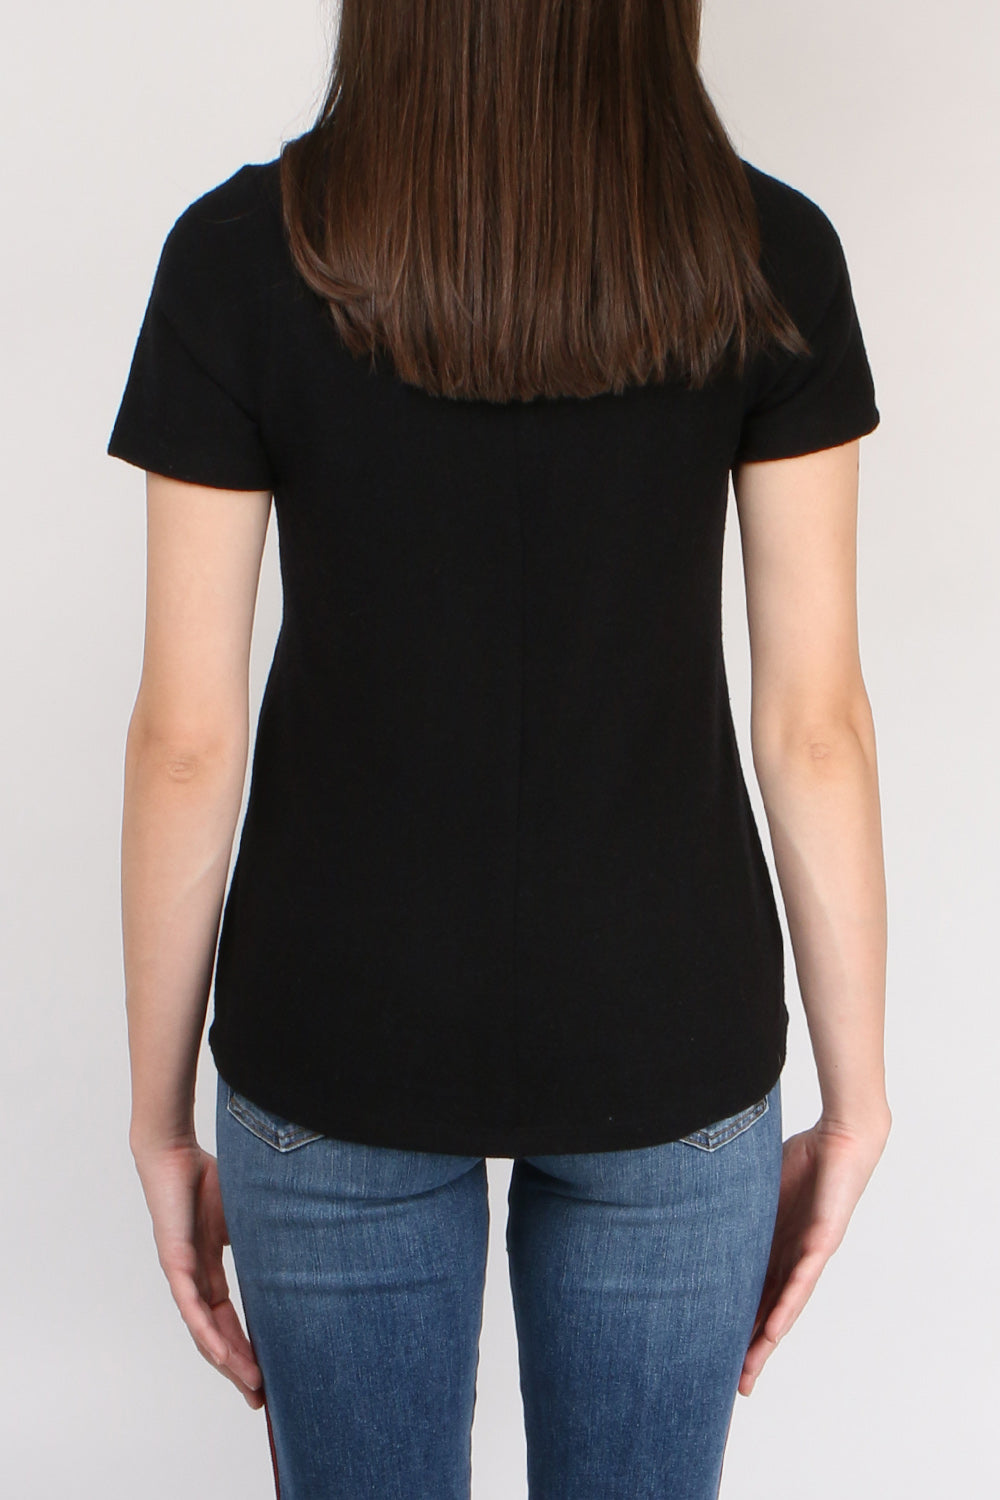 McGuire Bonfire Tee Black